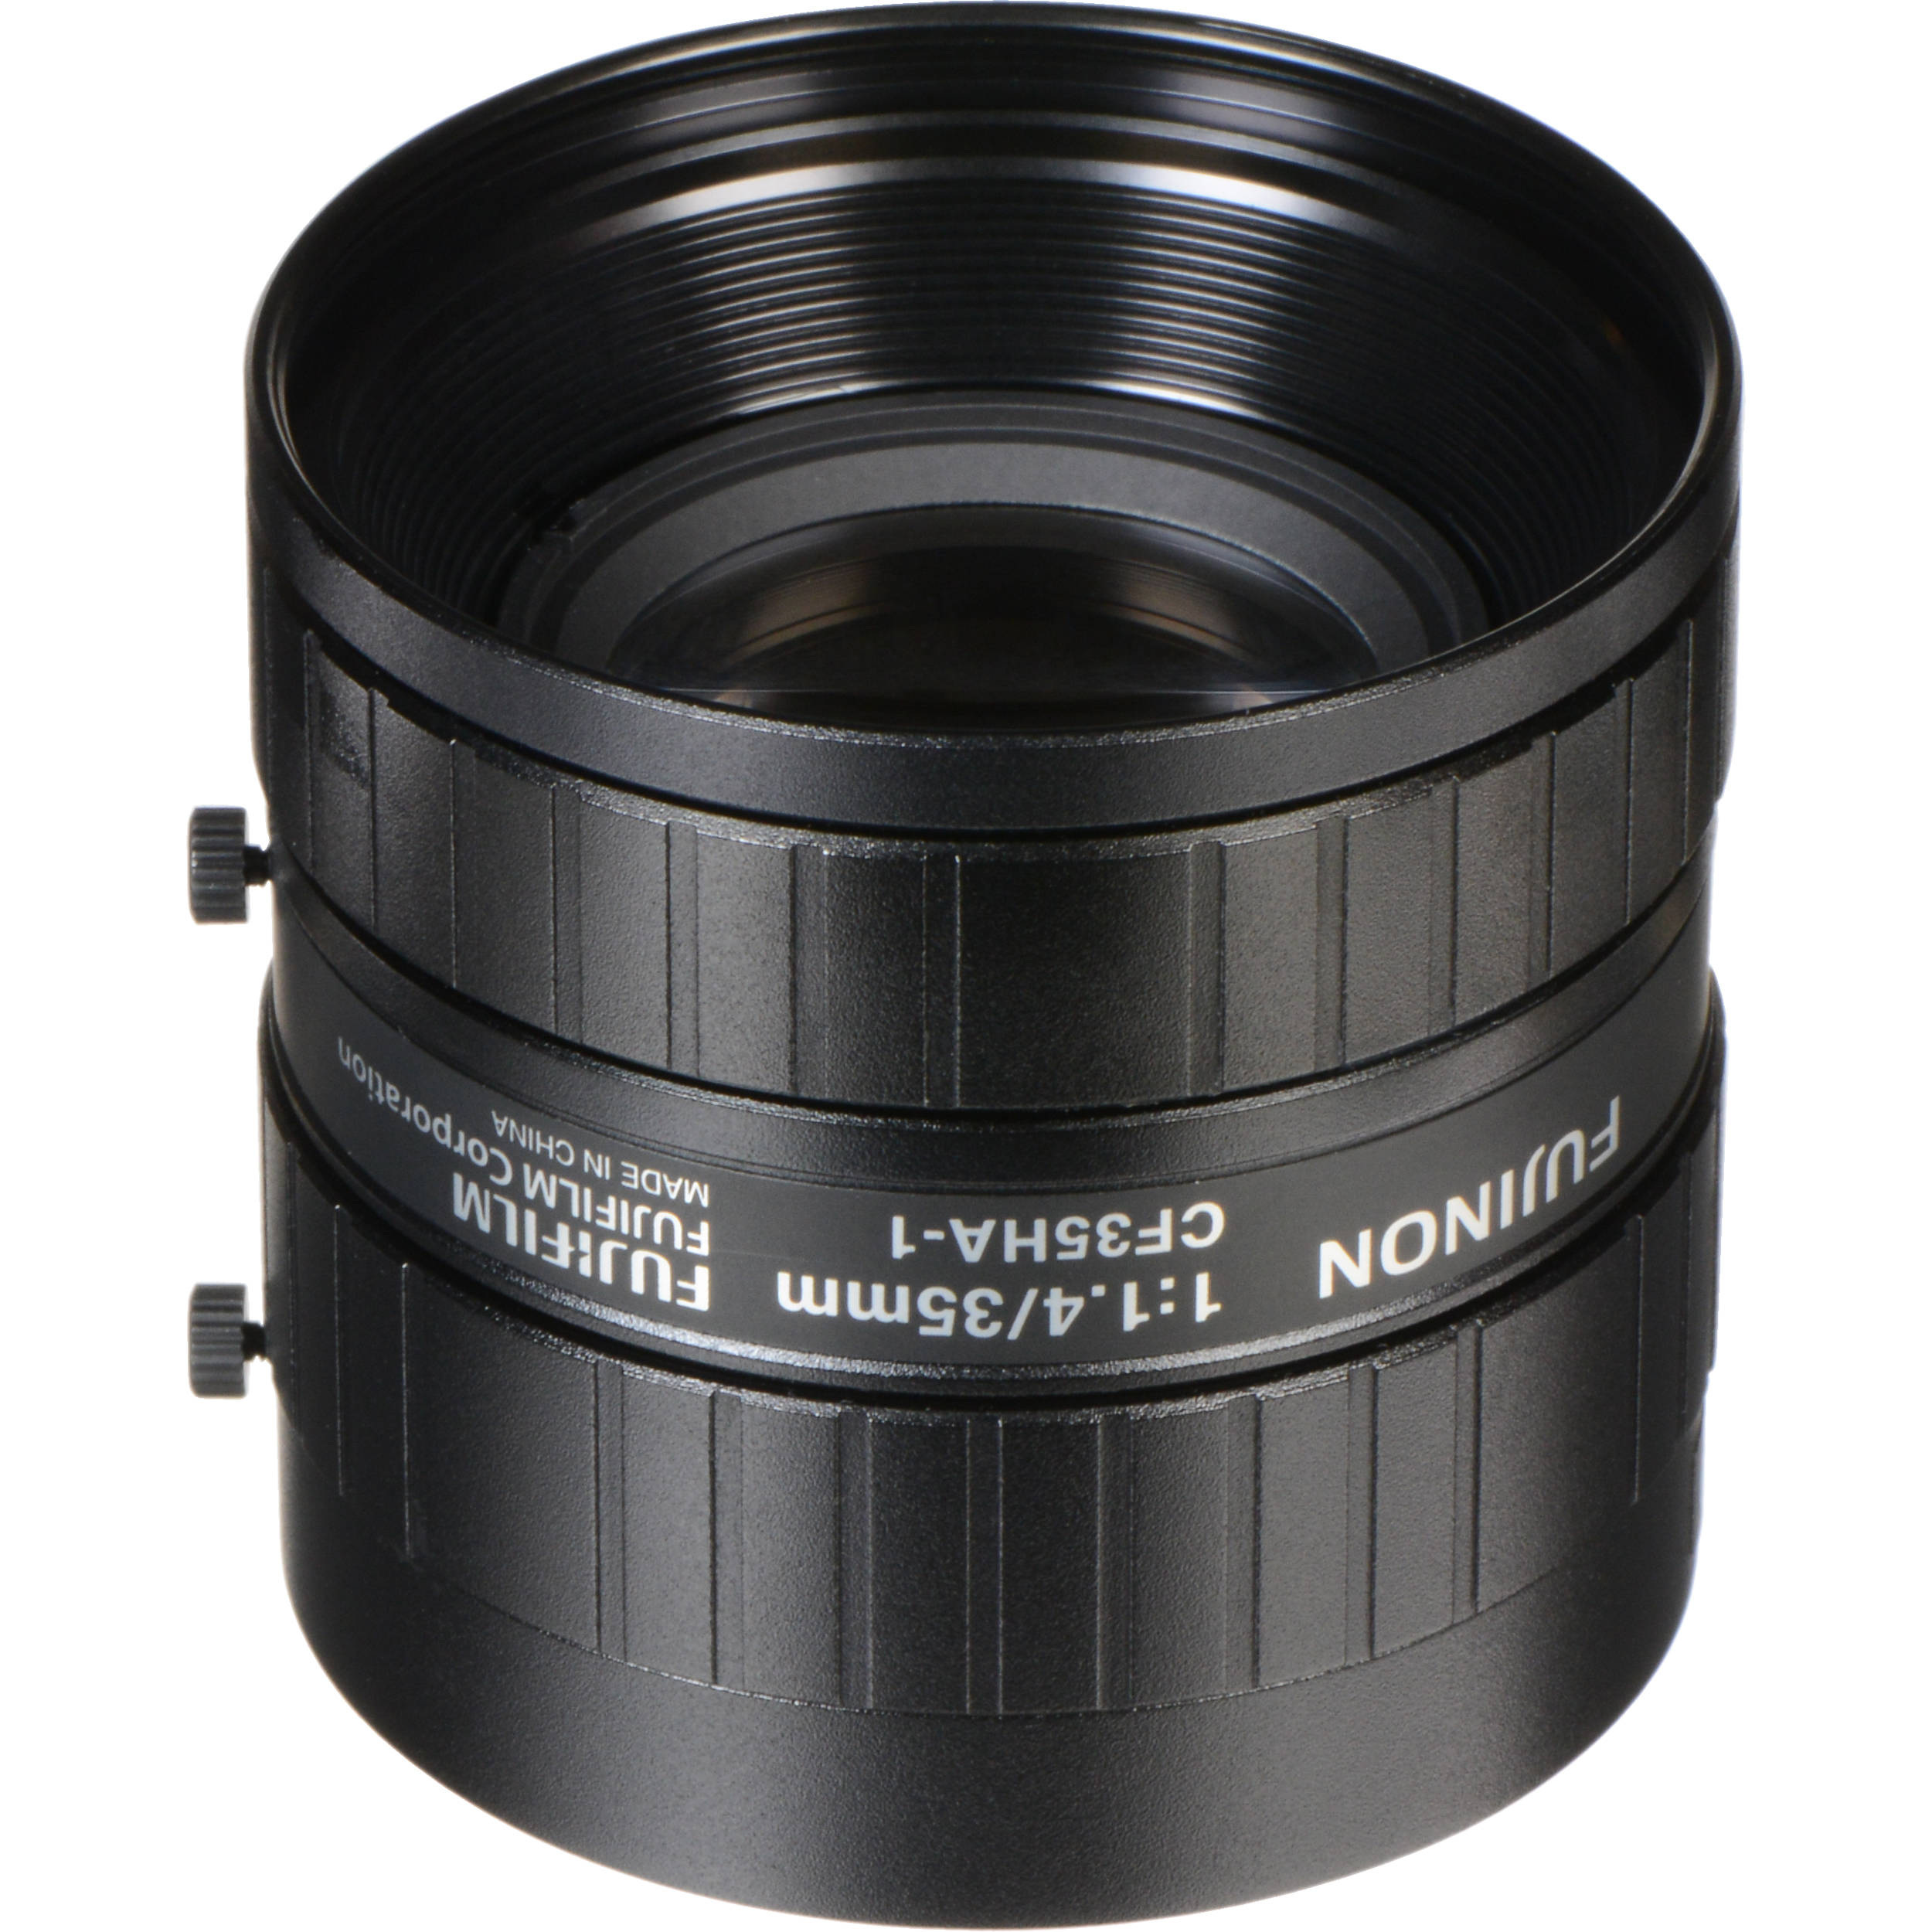 fujinon cf35ha 1 1 35mm industrial manual lens cf35ha 1 rh bhphotovideo com fujinon 4400 light source service manual fujinon lens service manual